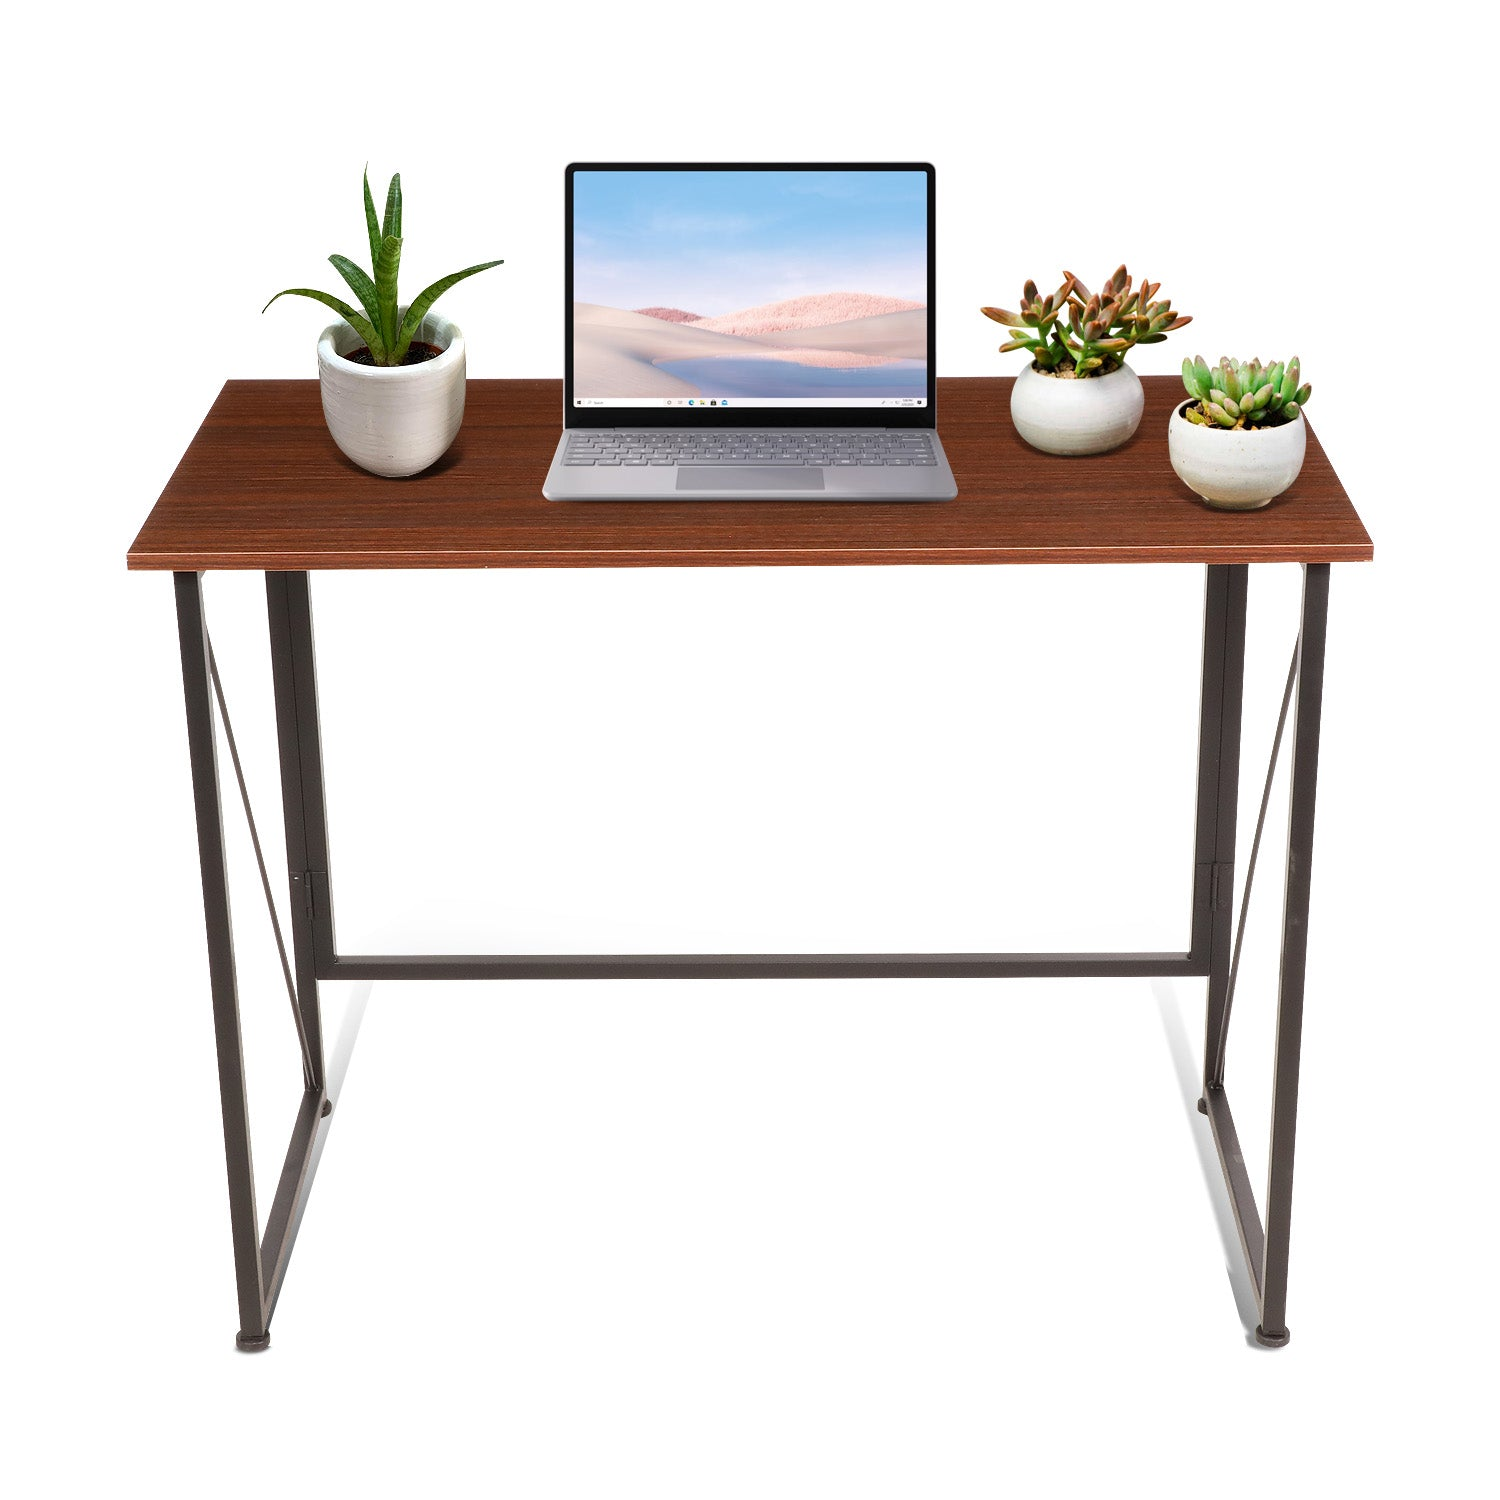 Saddle Brown Foldable Writing Computer Desk  40 inch